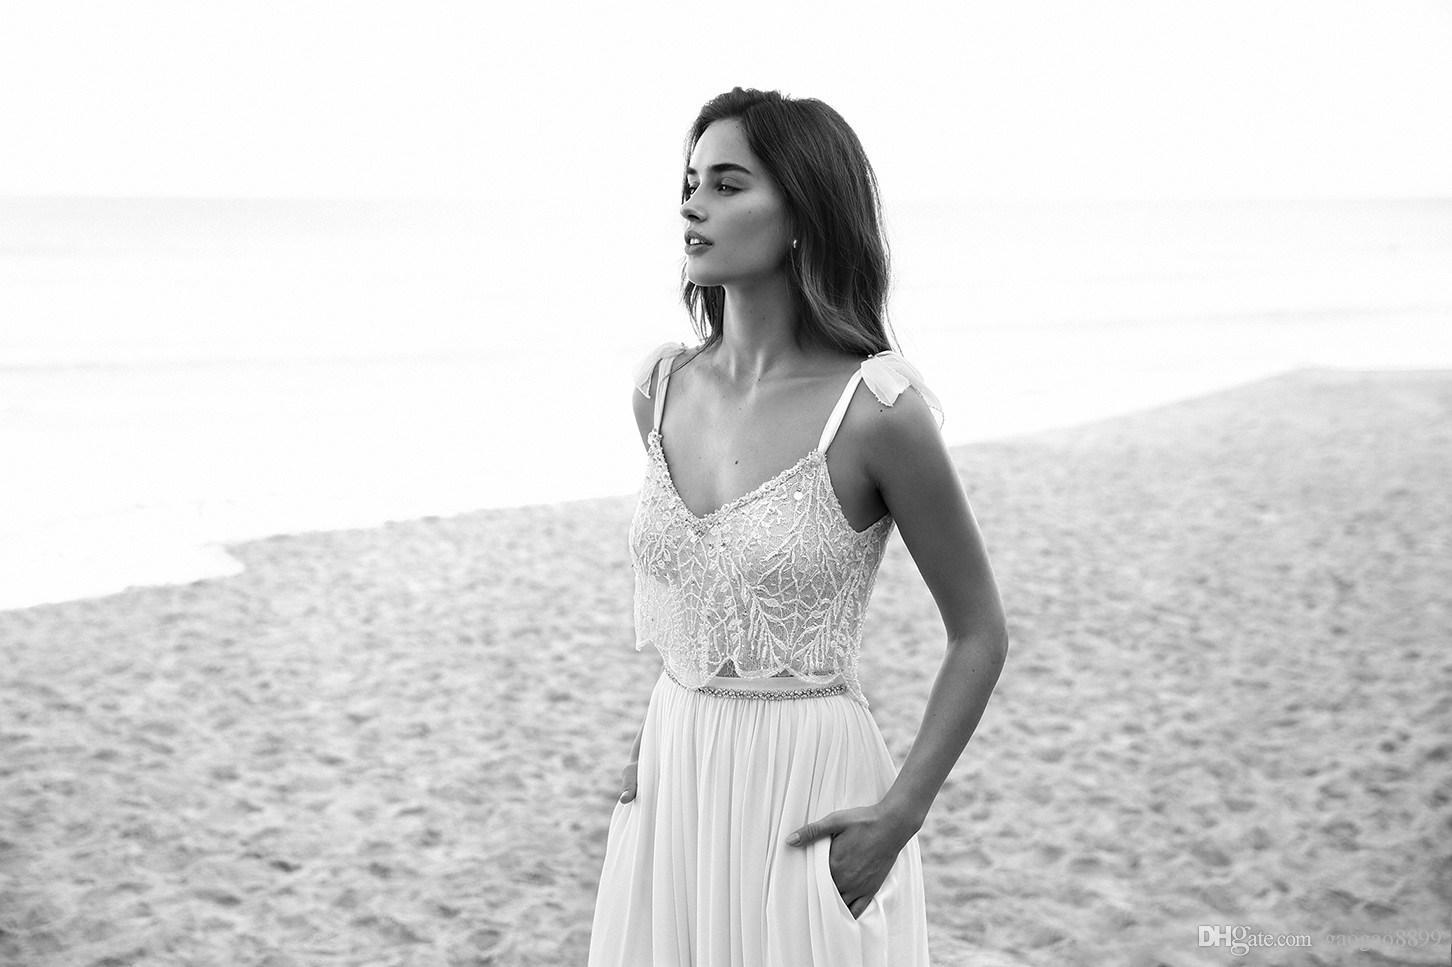 2019 Sexy Lihi hod Lace Boho Wedding Dresses Bride Gowns Spaghetti Neck Bow Beads Backless Beach Chiffon Wedding Gowns